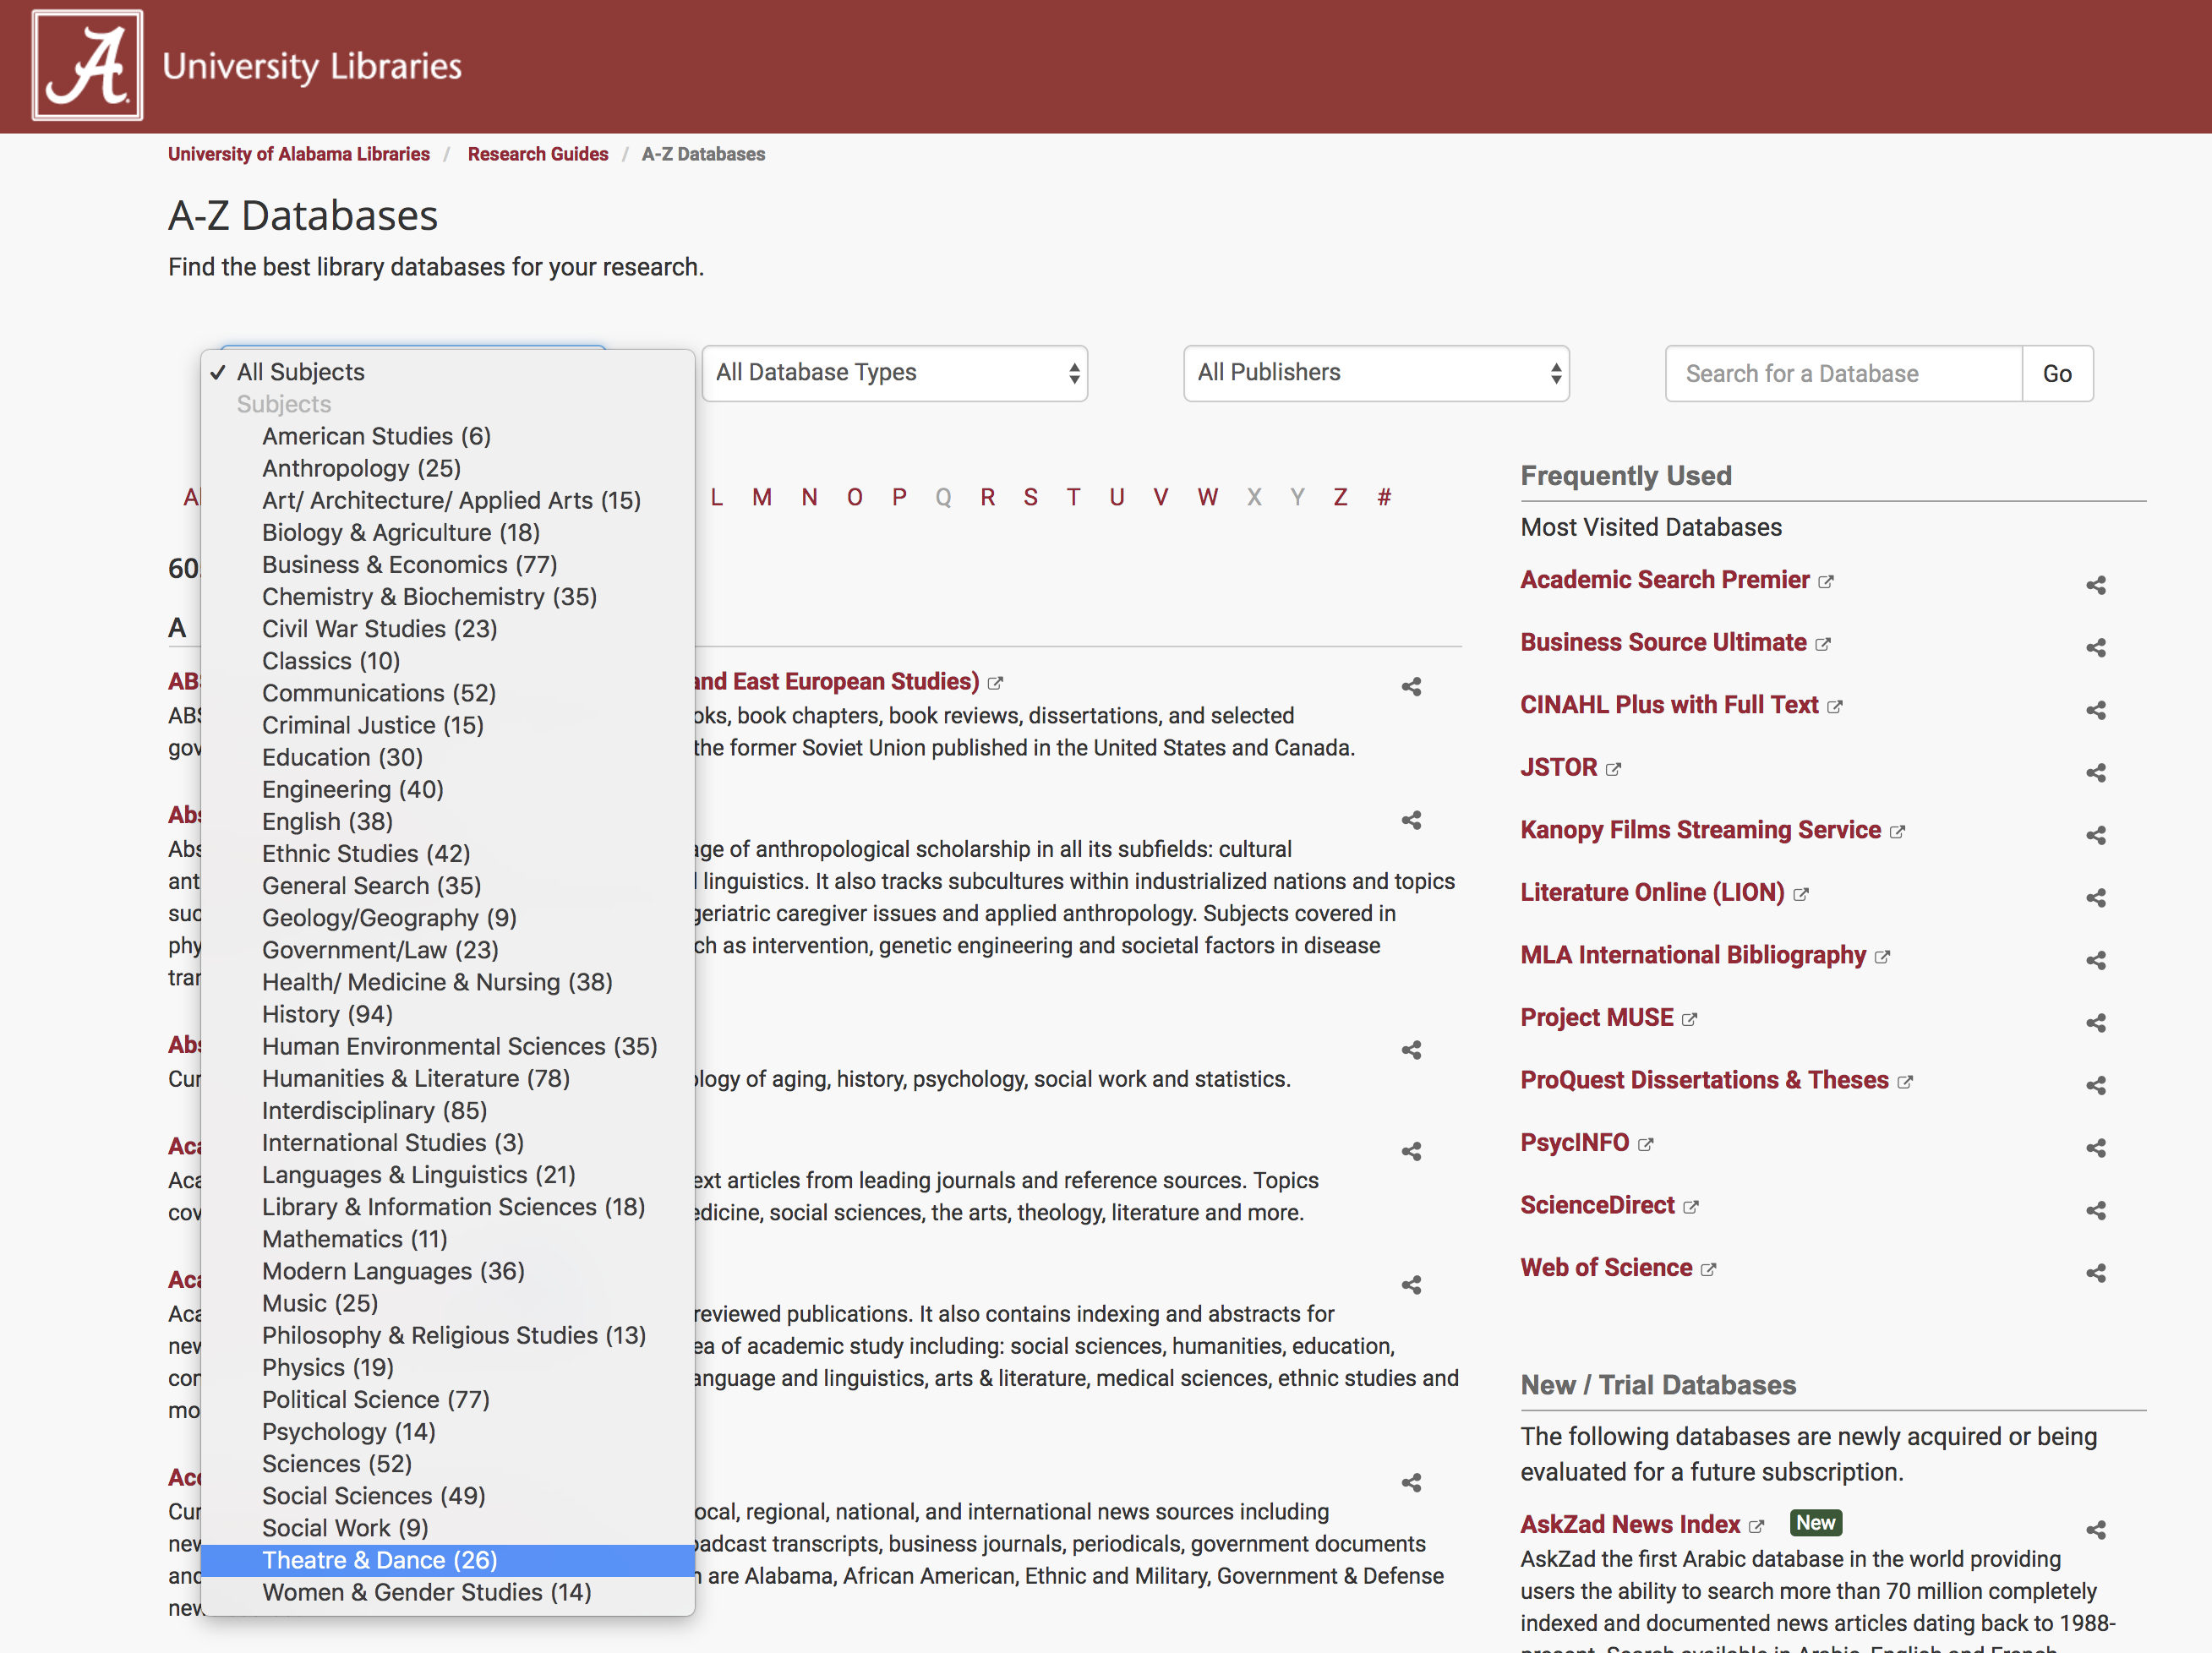 screenshot of A-Z Database page on the University of Alabama library website showing the expanded subject options